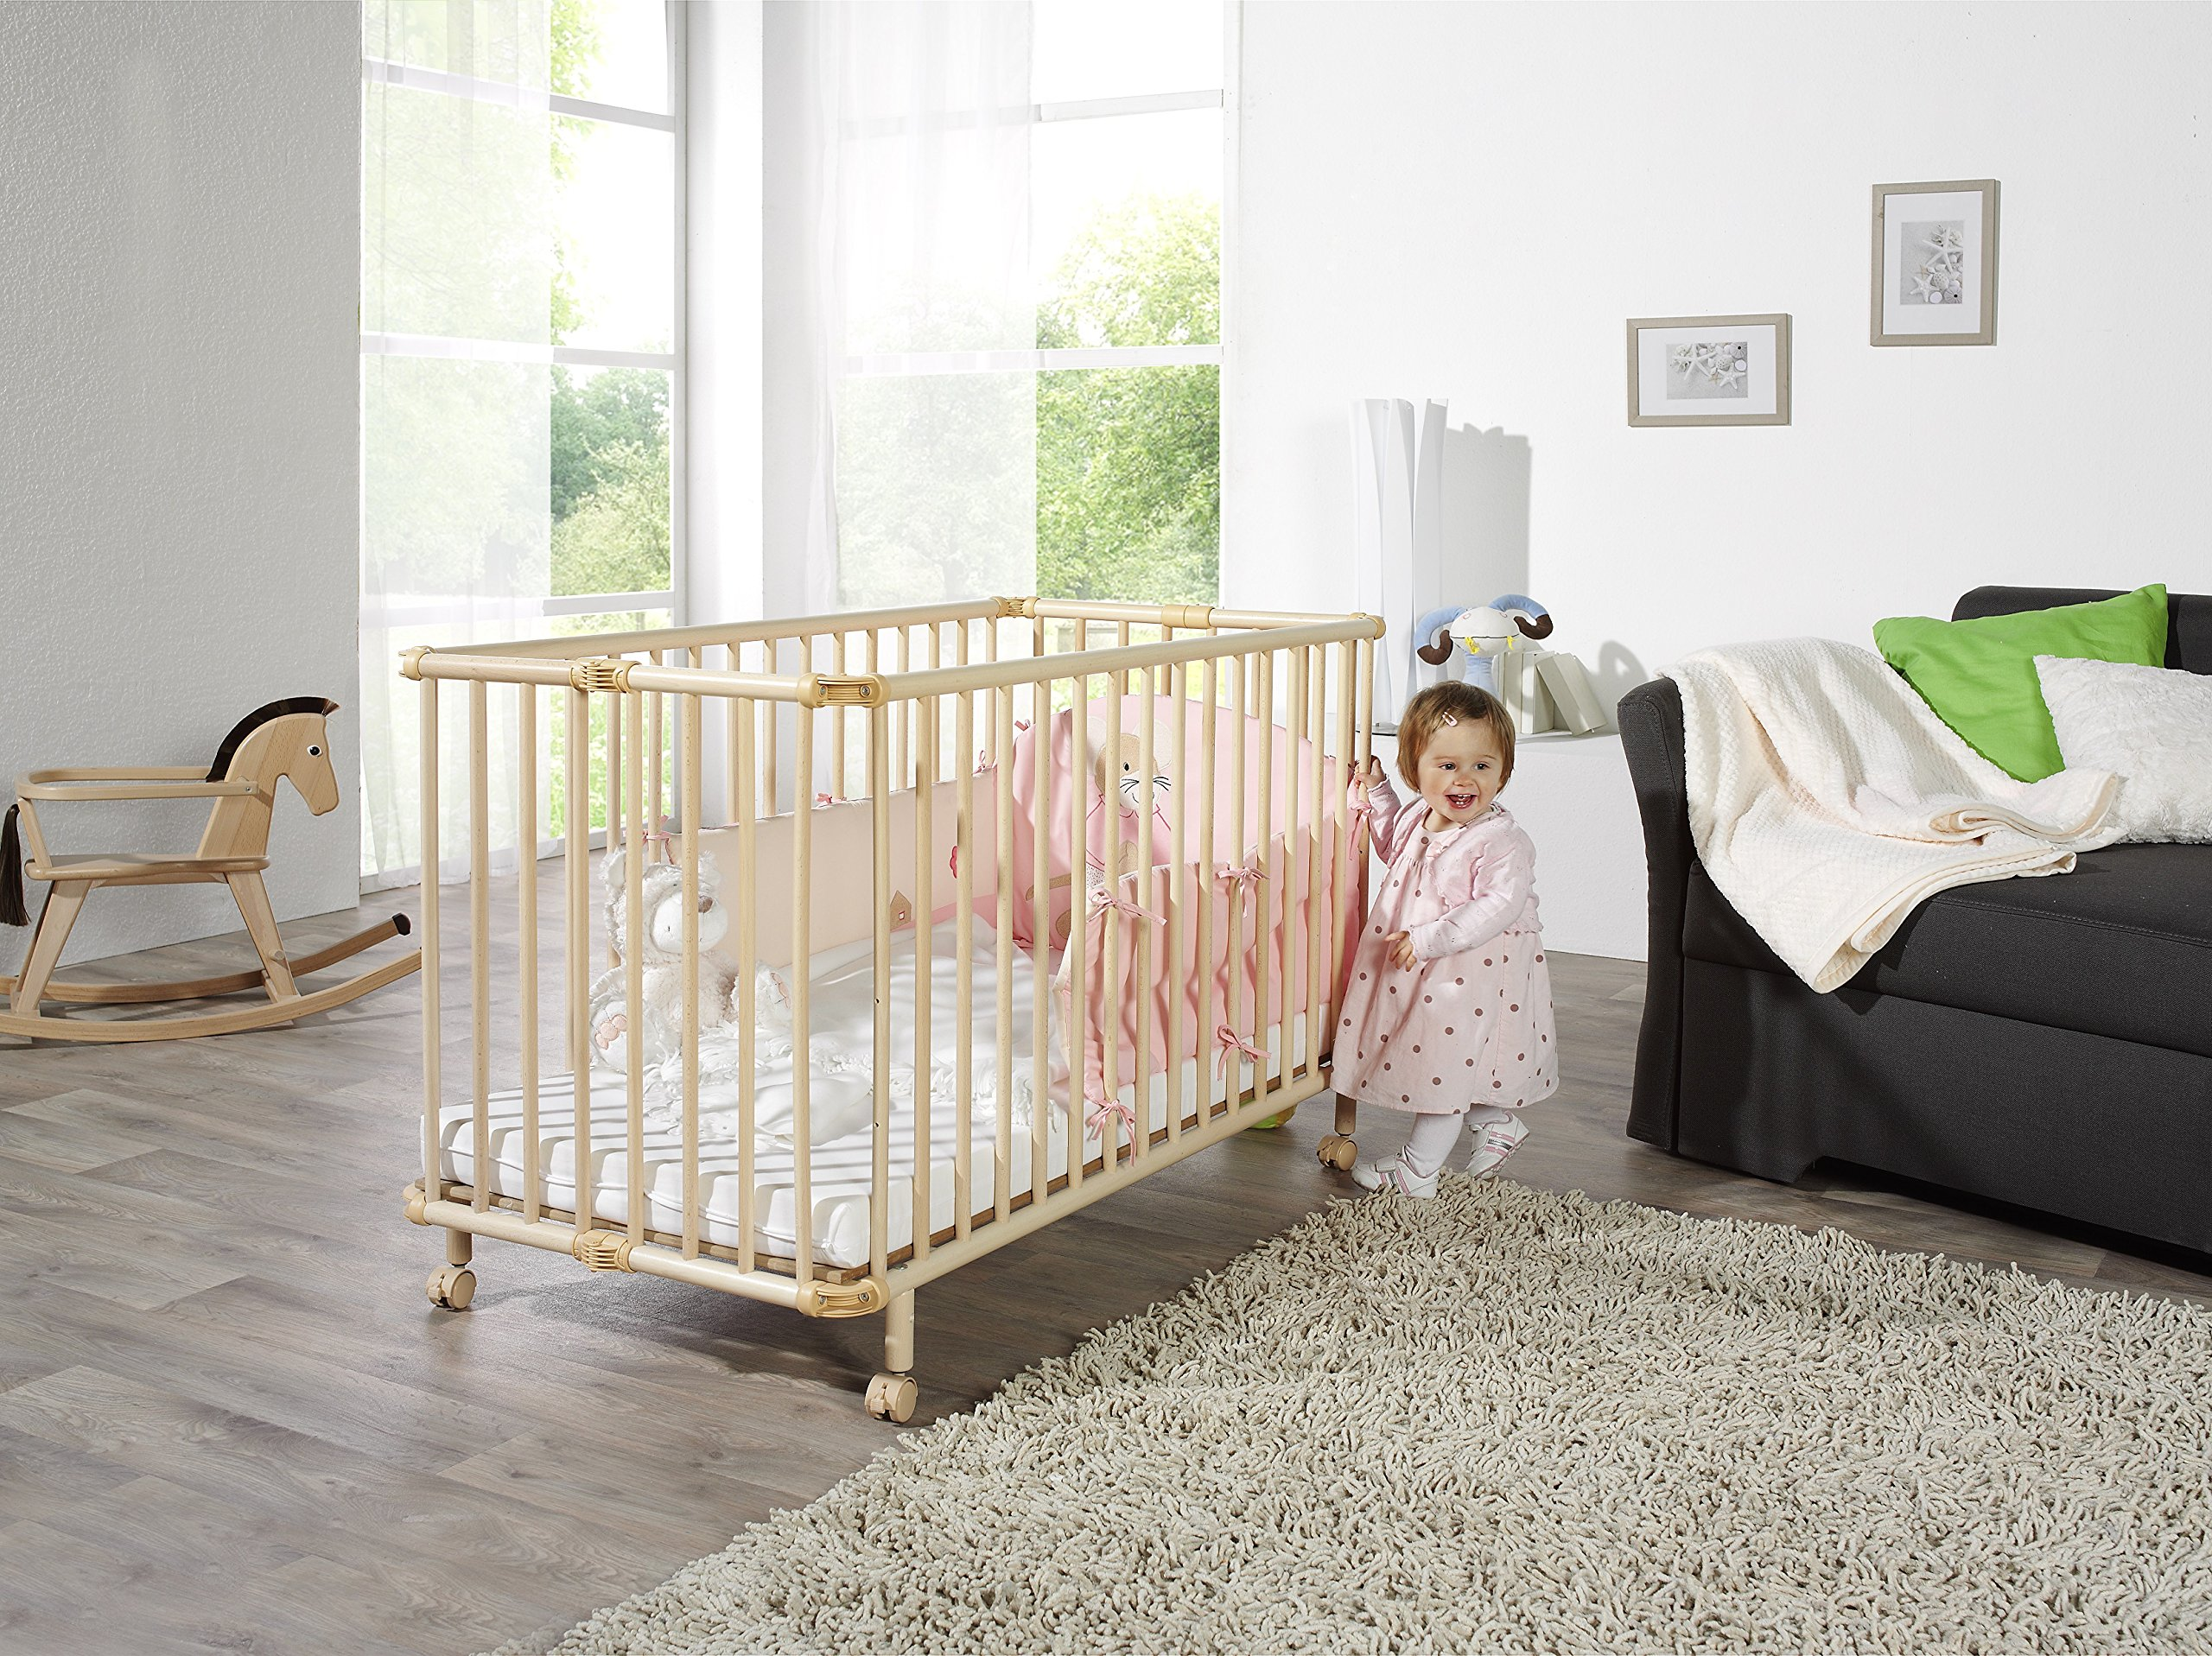 Geuther - Folding Wooden Cot Mayla (60 x 120 cm, White)  Innovative fold away wooden cot Compact foldable design for easy storage Four lockable wheels for simple transportation around the home 3